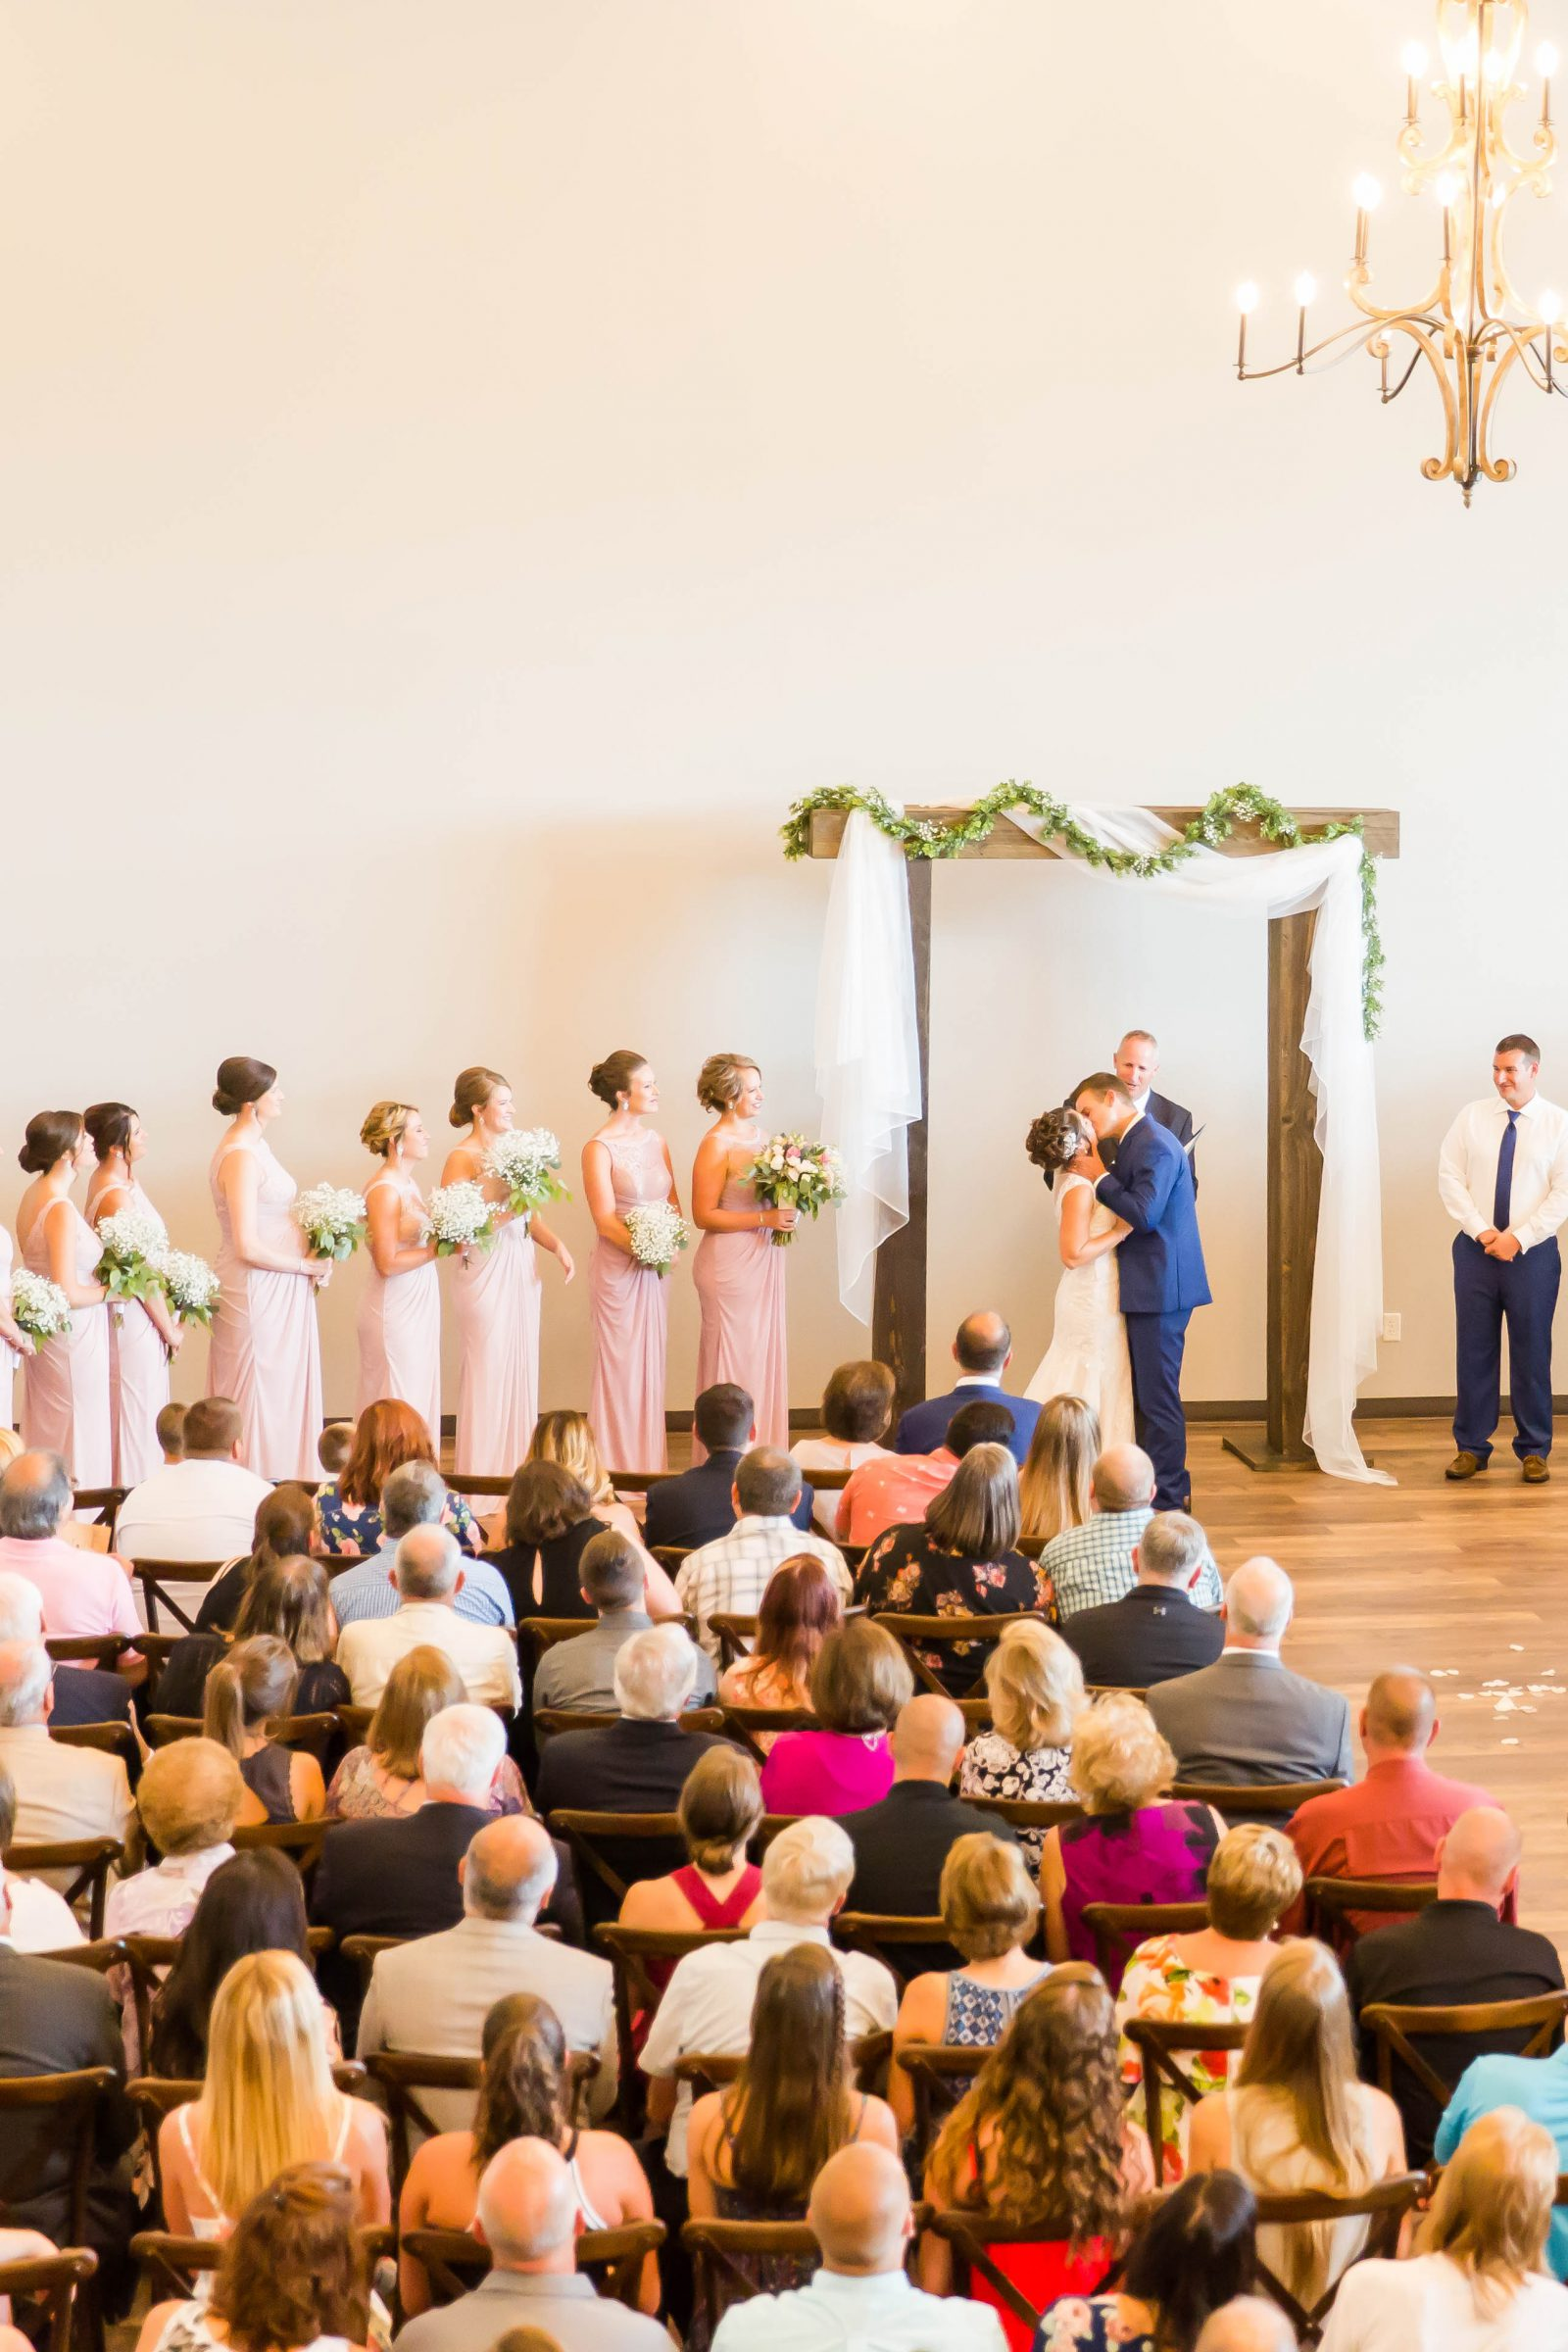 encore-hall-wedding-berlin-ohio-loren-jackson-photography-97